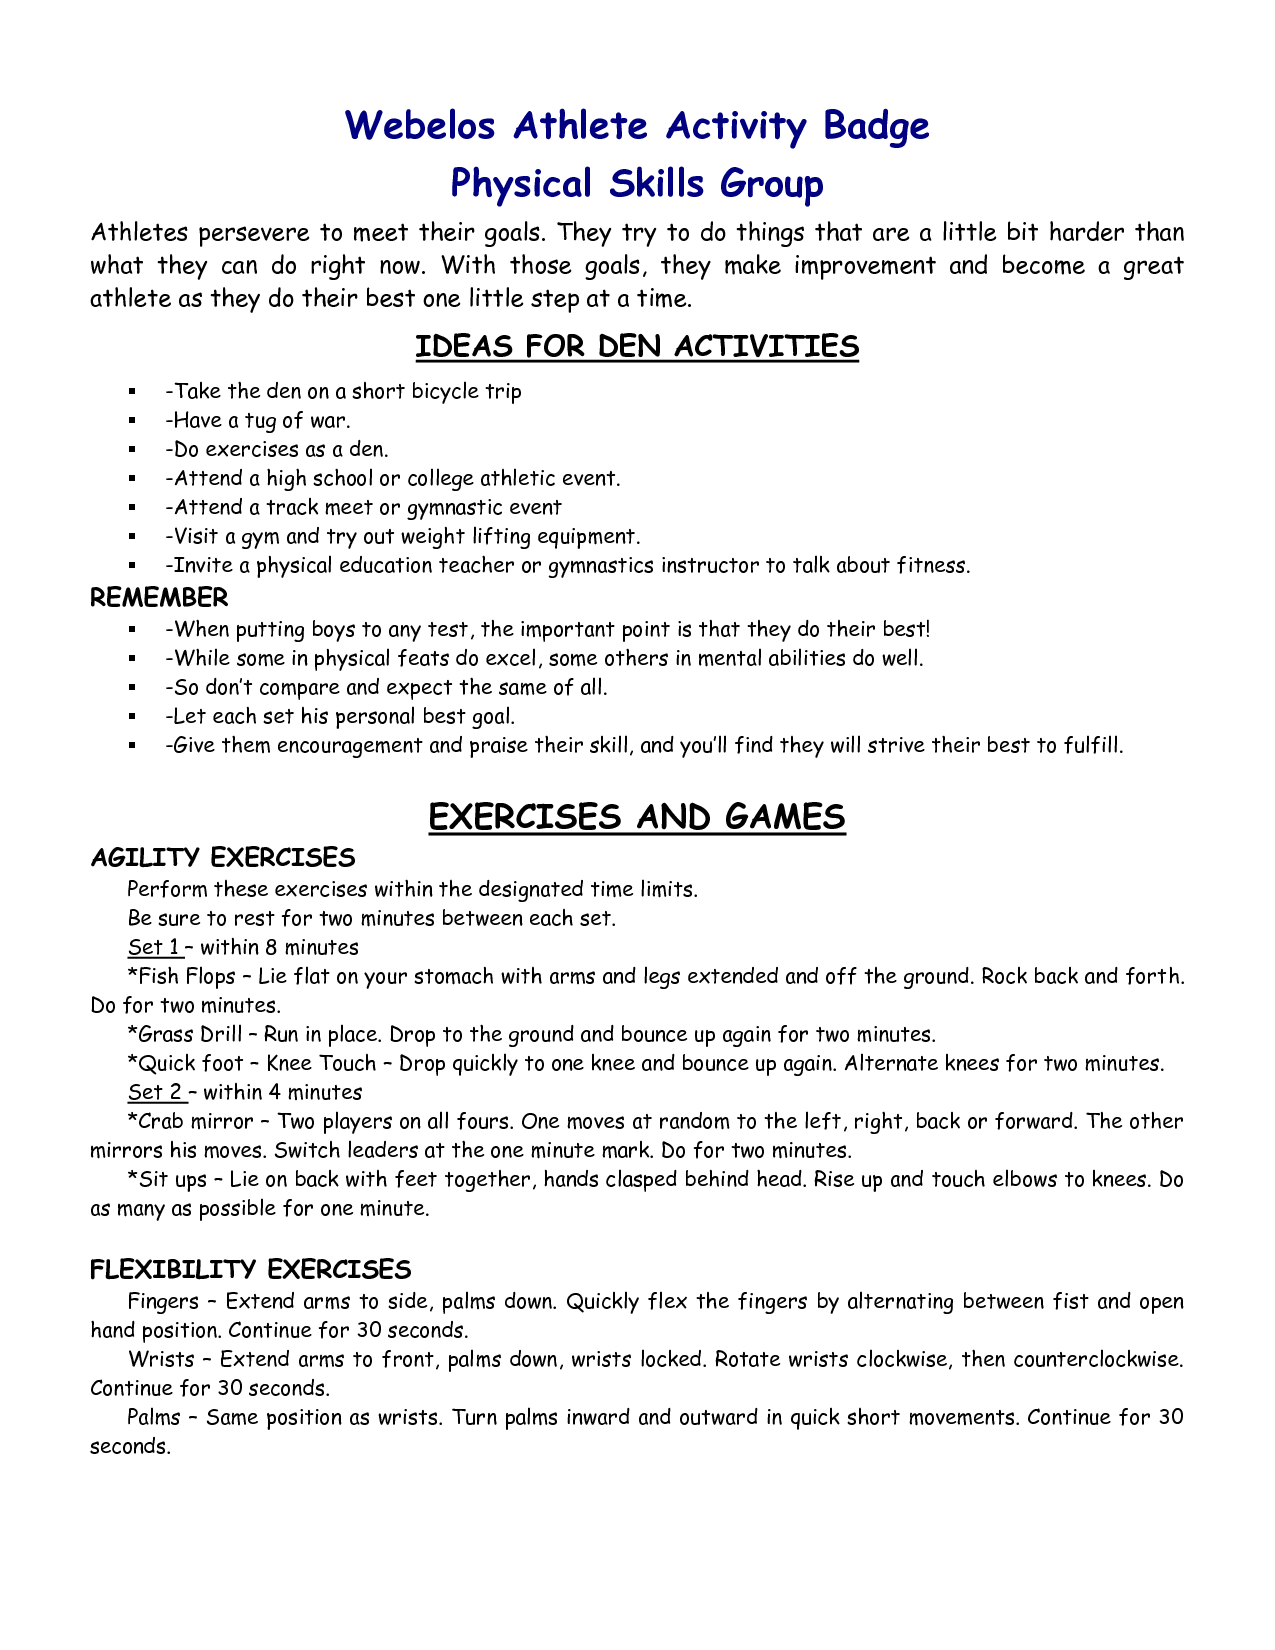 webelos fitness badge worksheet | Athlete Webelos Athlete | scouts ...